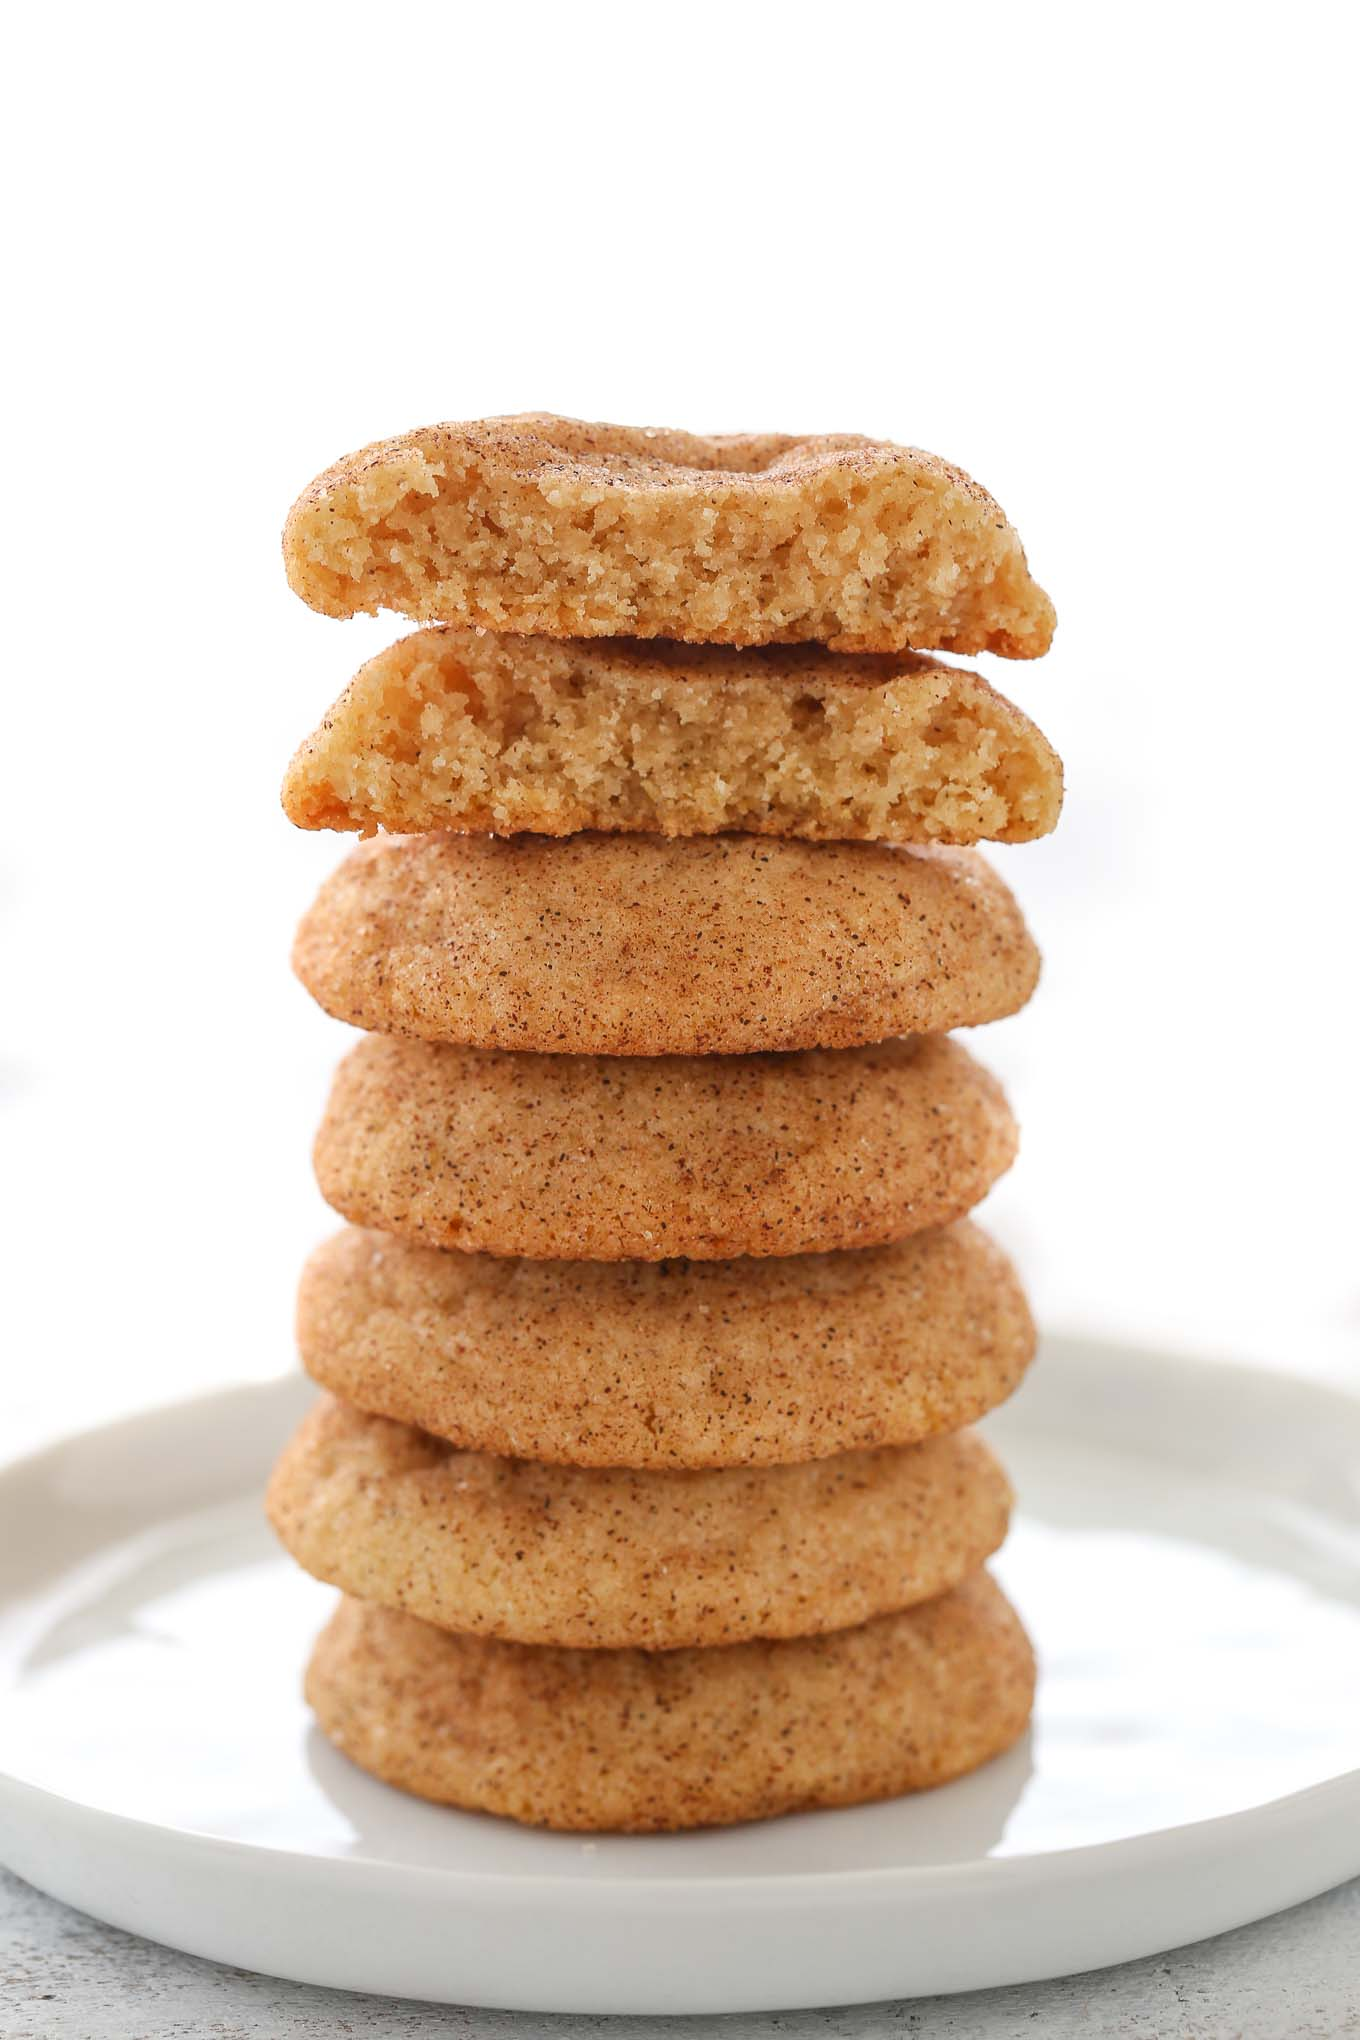 Soft, chewy, buttery cookies coated in cinnamon and sugar. These Snickerdoodles bake up super thick and turn out perfect every single time!